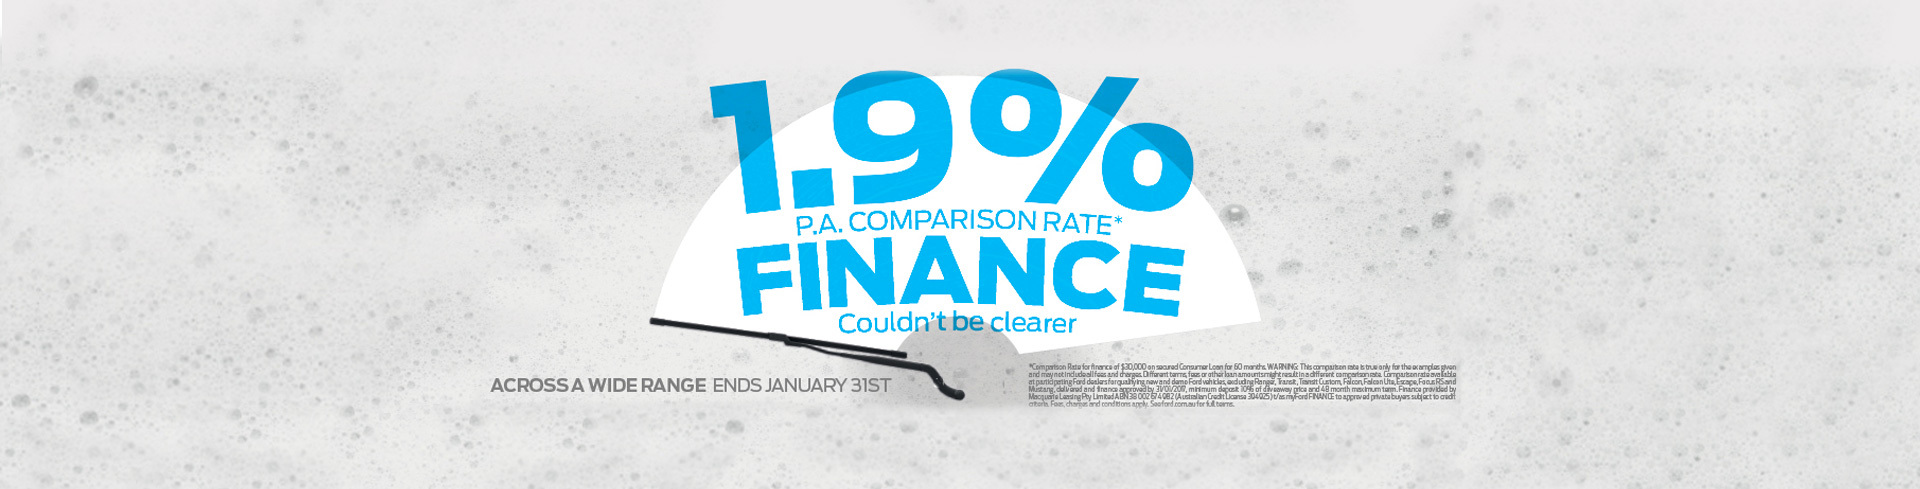 Ford National Offer - 1.9% P.A. Comparison Rate Finance